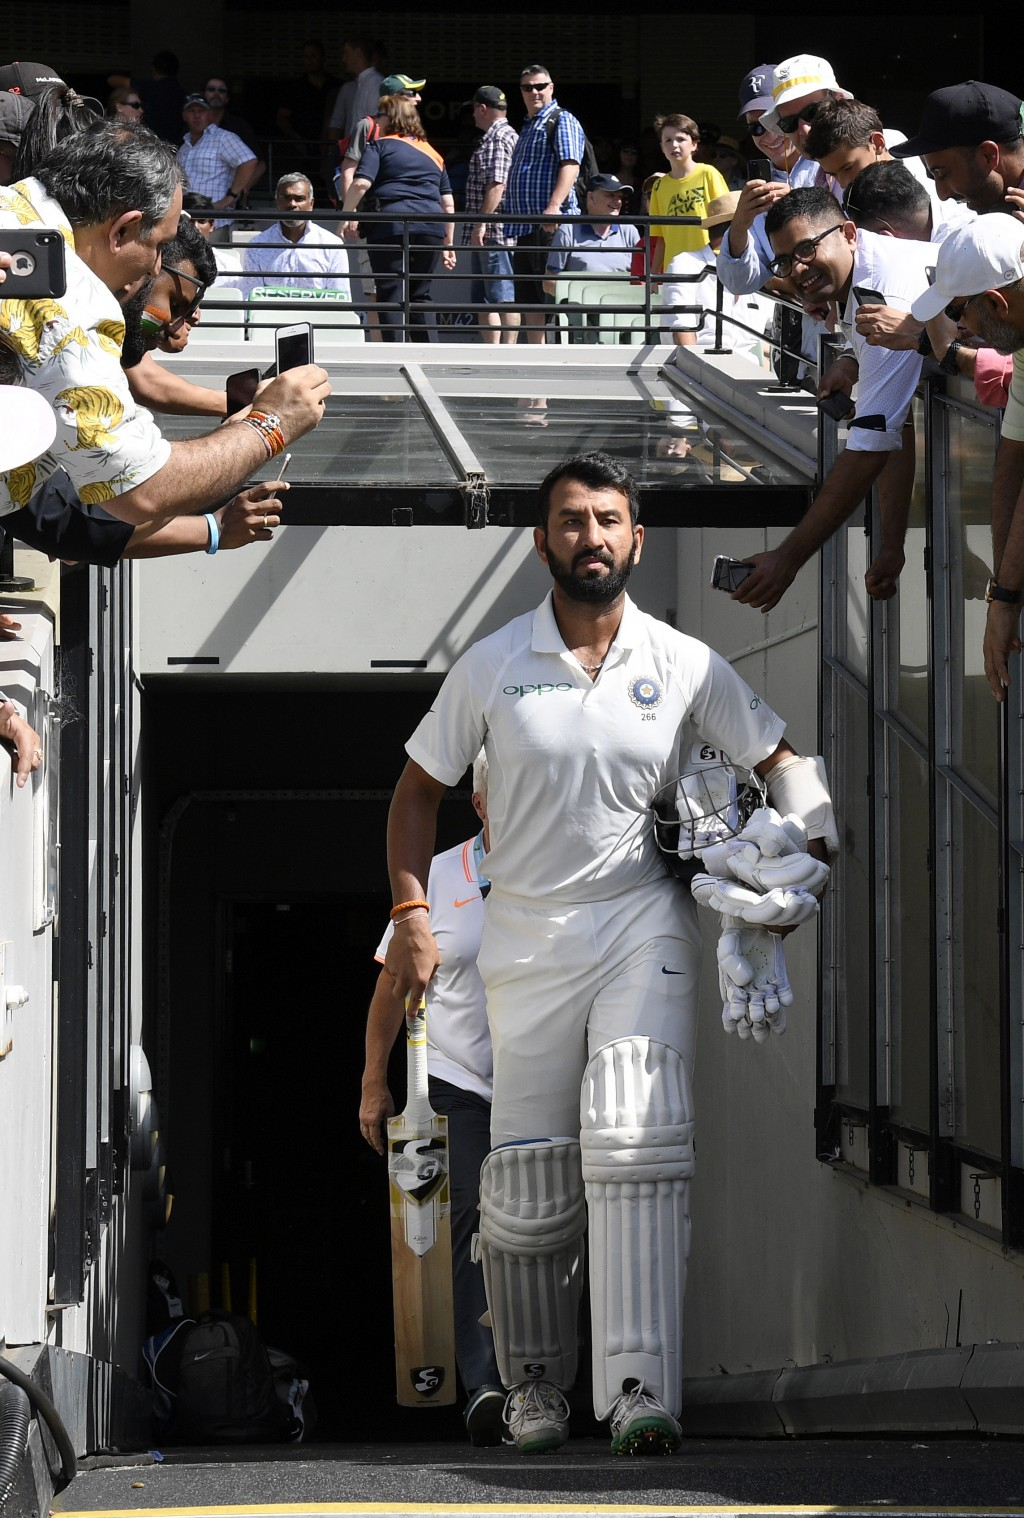 India's Cheteshwar Pujara enters the field before play on day two of the third cricket test between India and Australia in Melbourne, Australia, Thurs